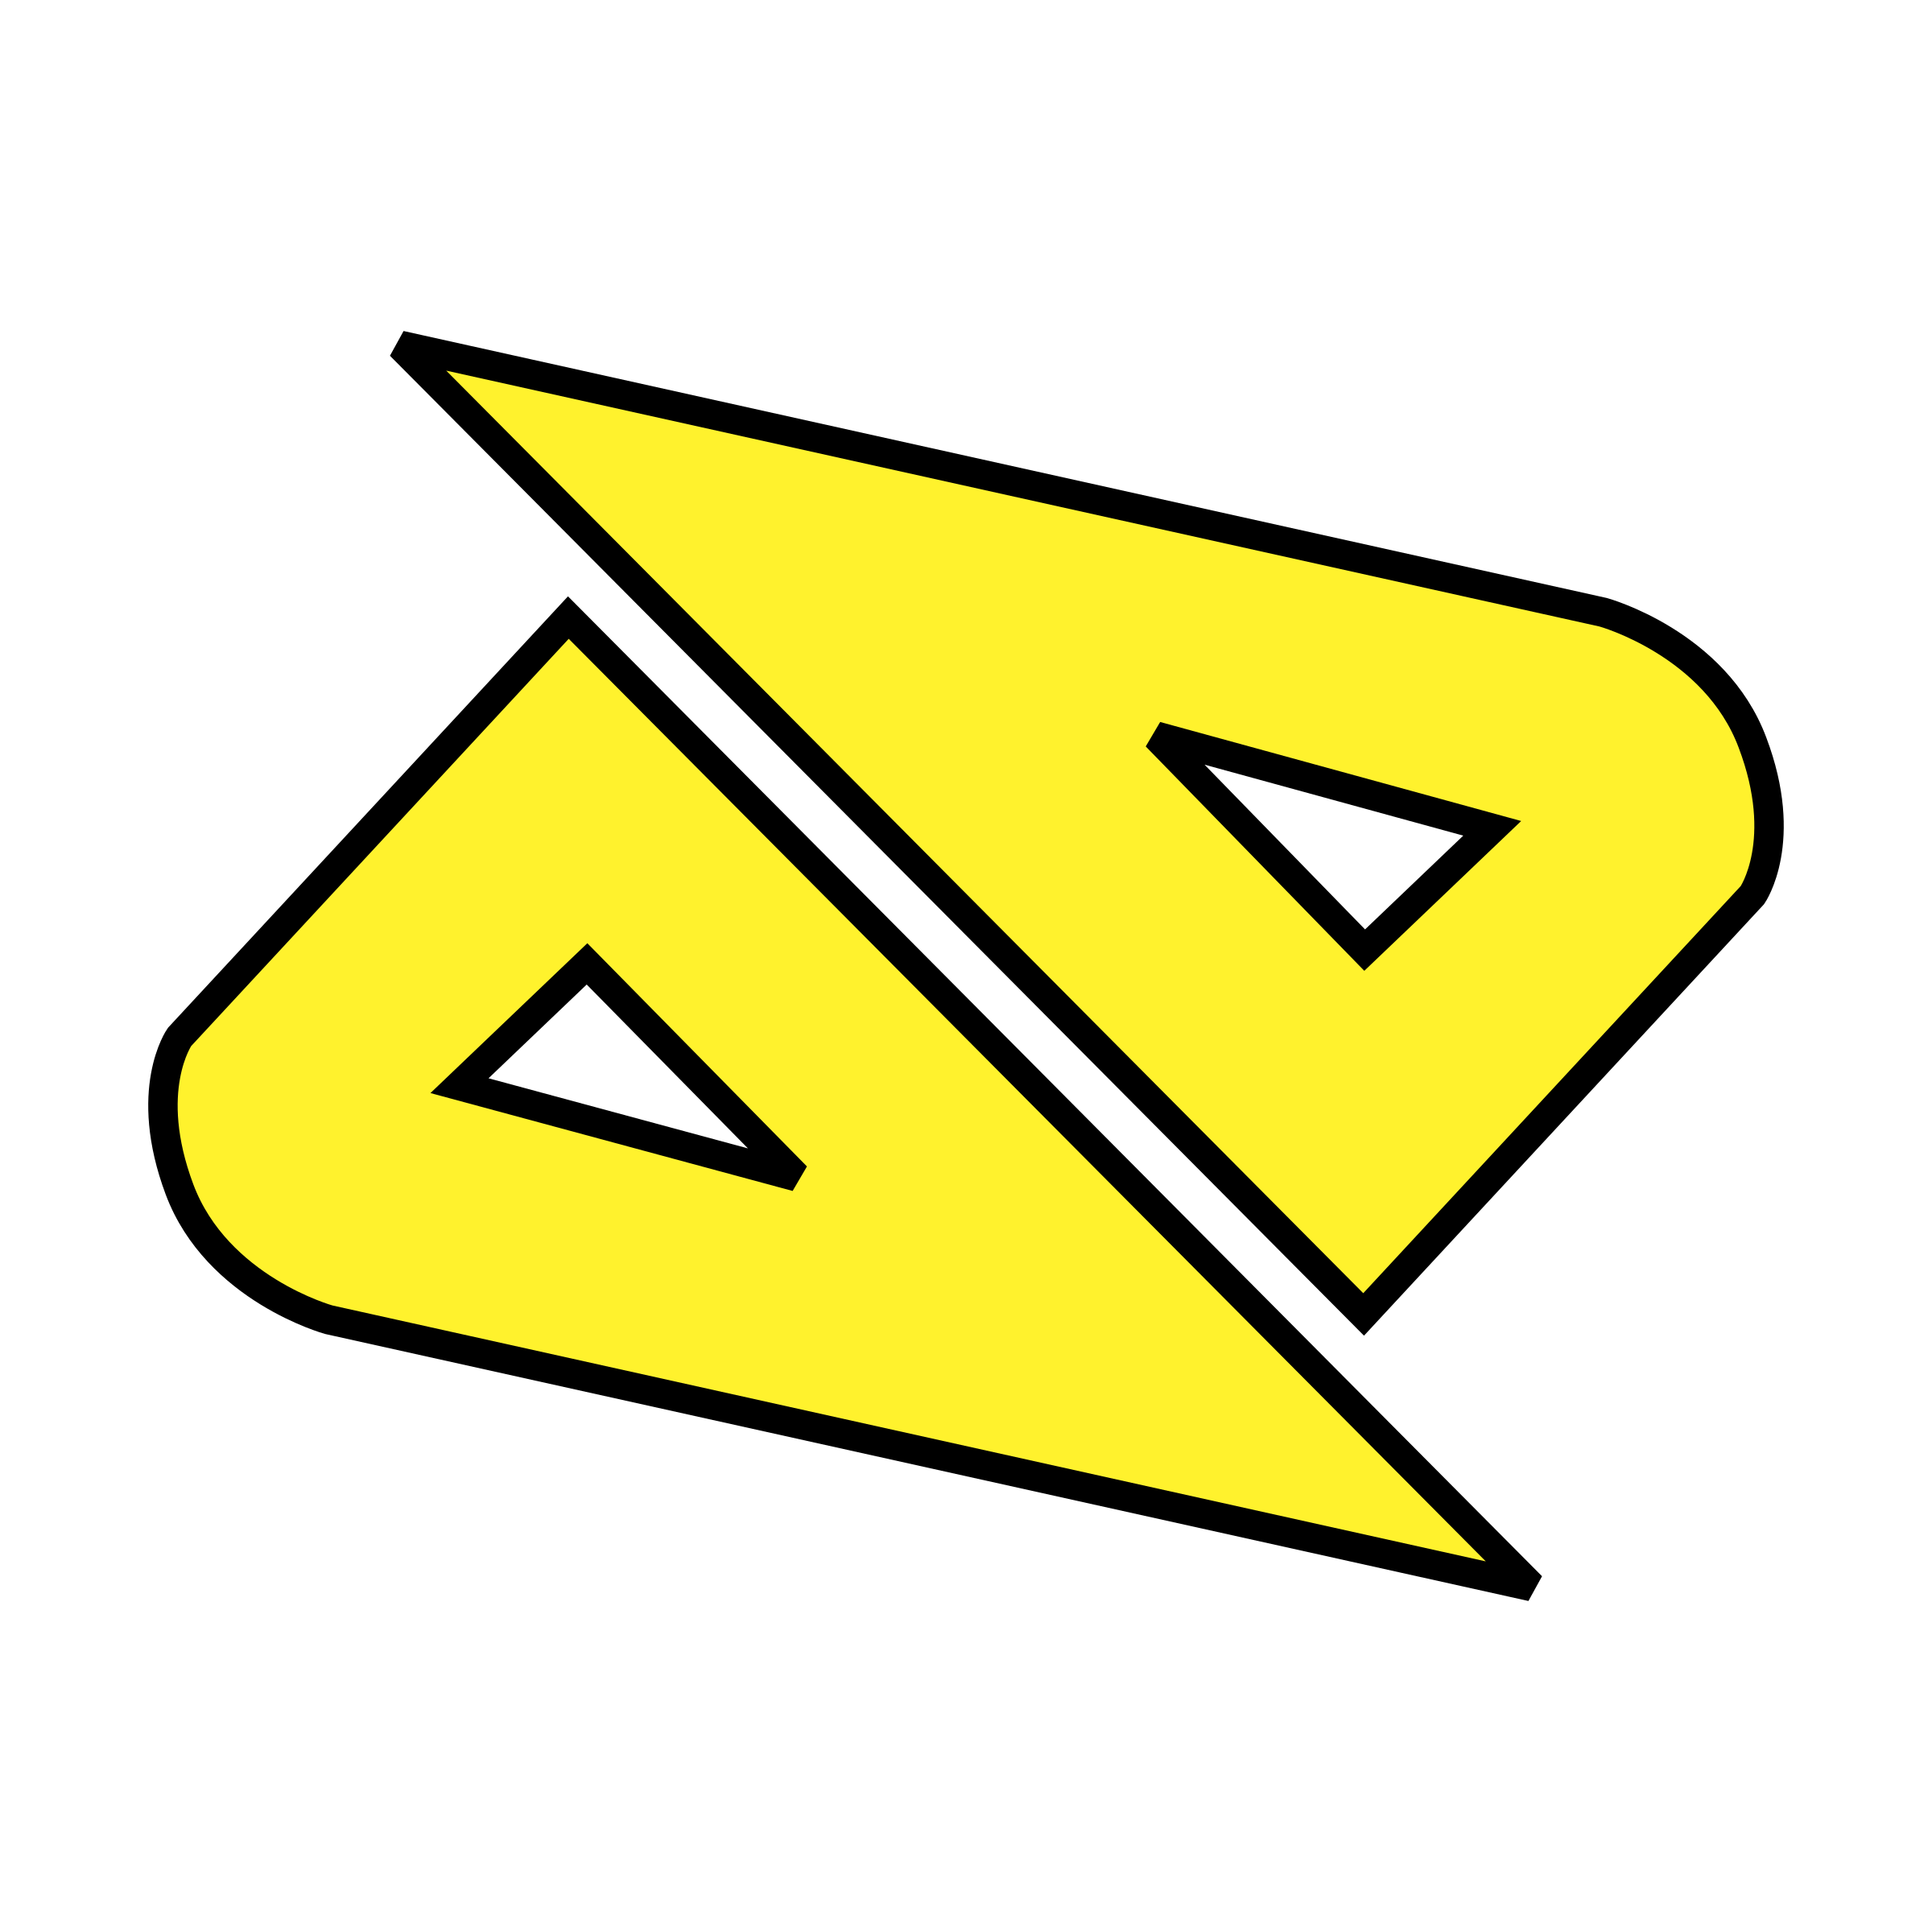 Boost vector yellow arrow. Mobile logo png transparent